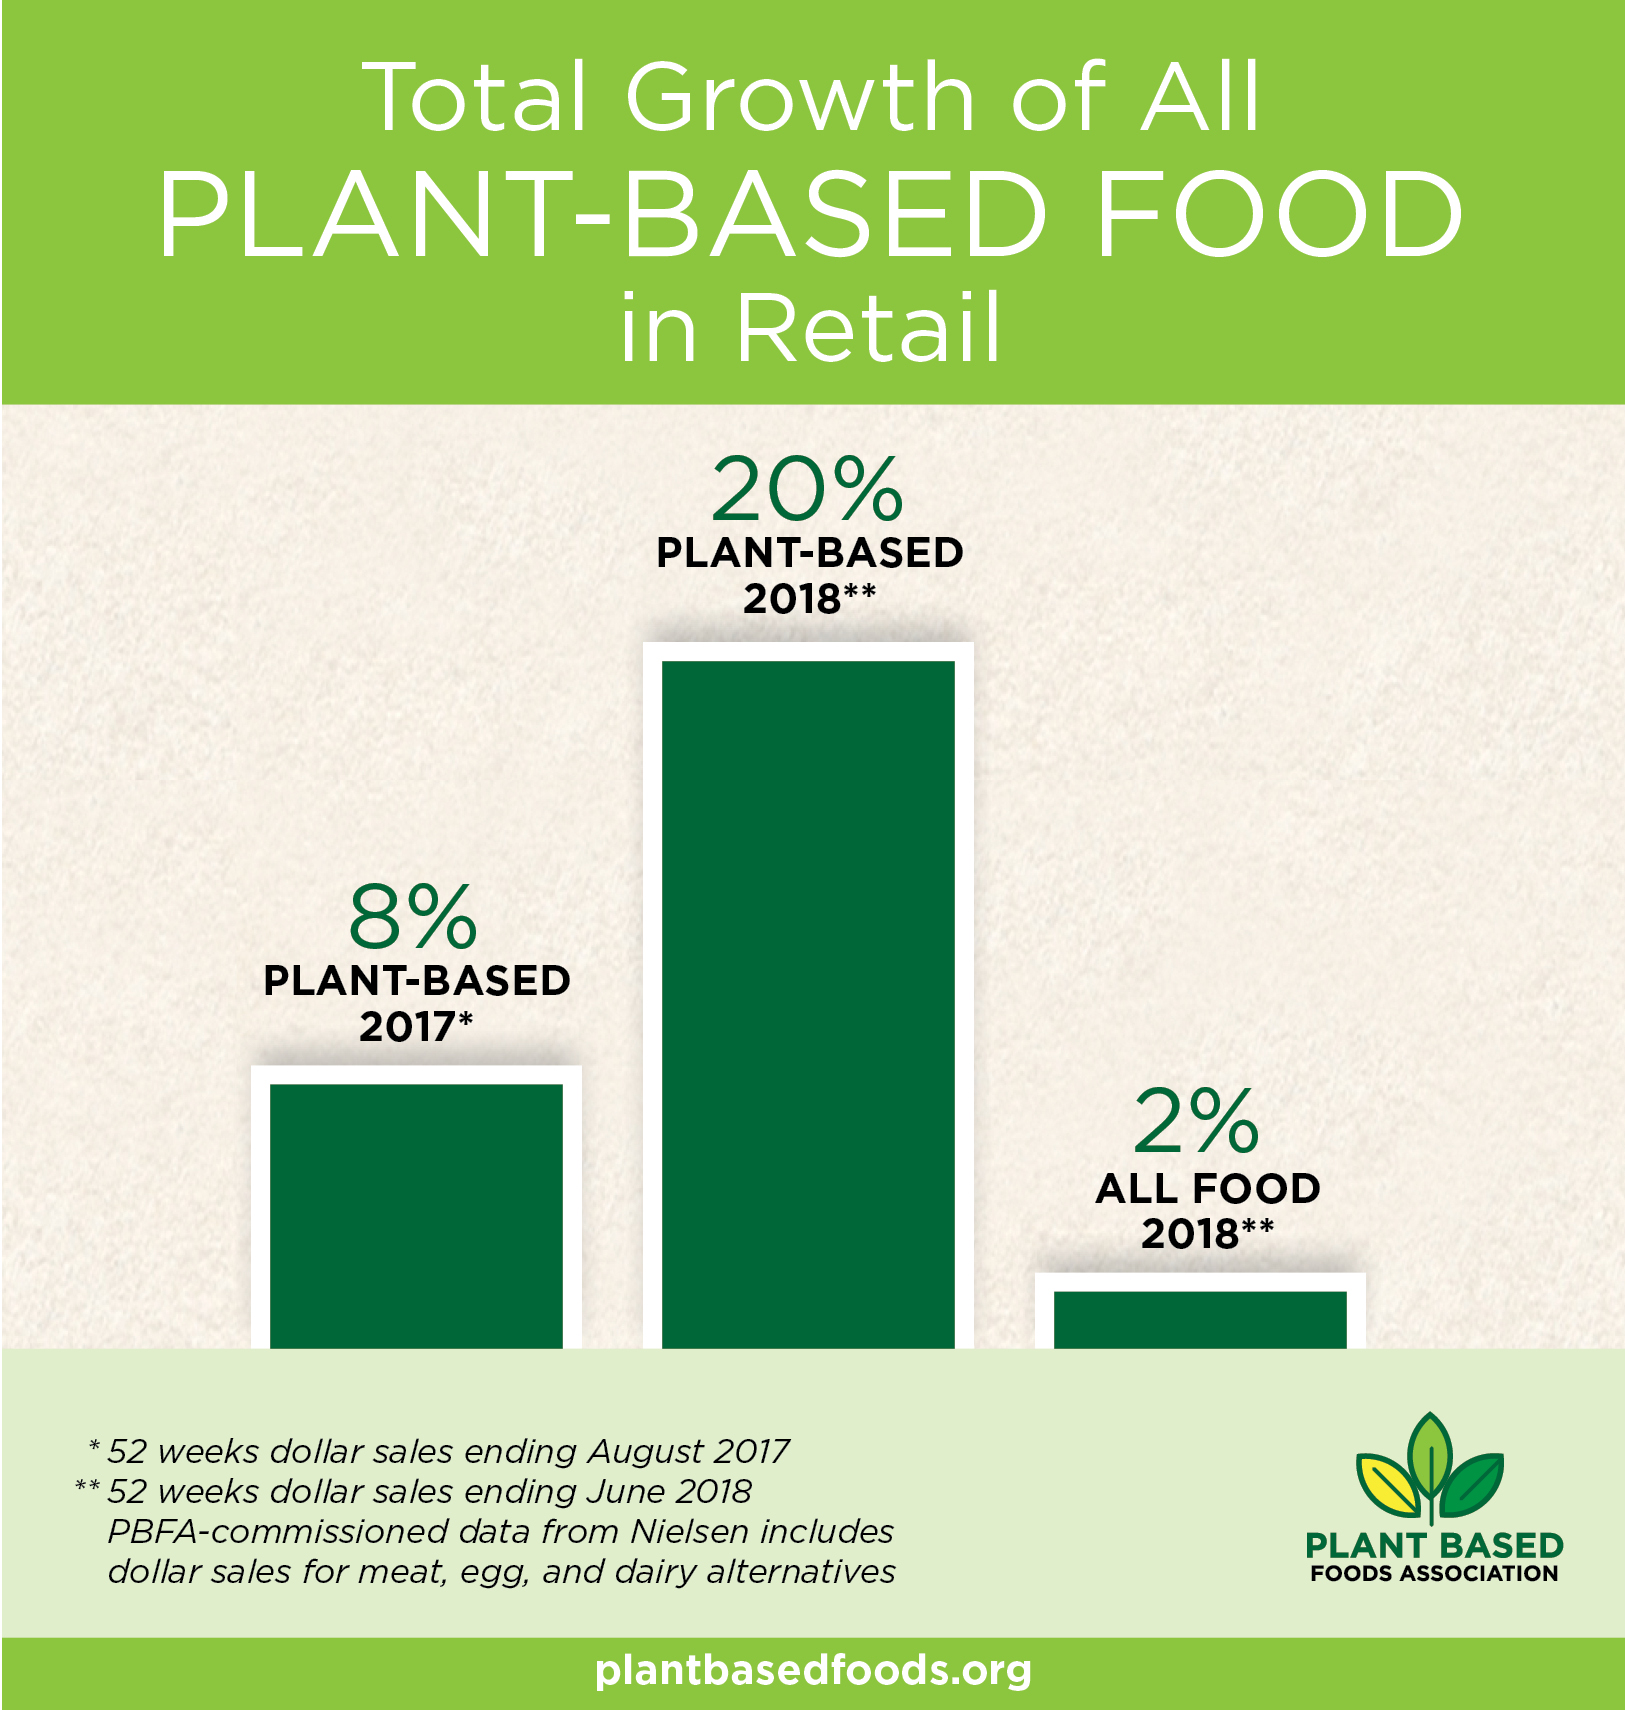 Since PBFA released Nielsen retail sales data last year, the growth of  plant-based sales has more than doubled.